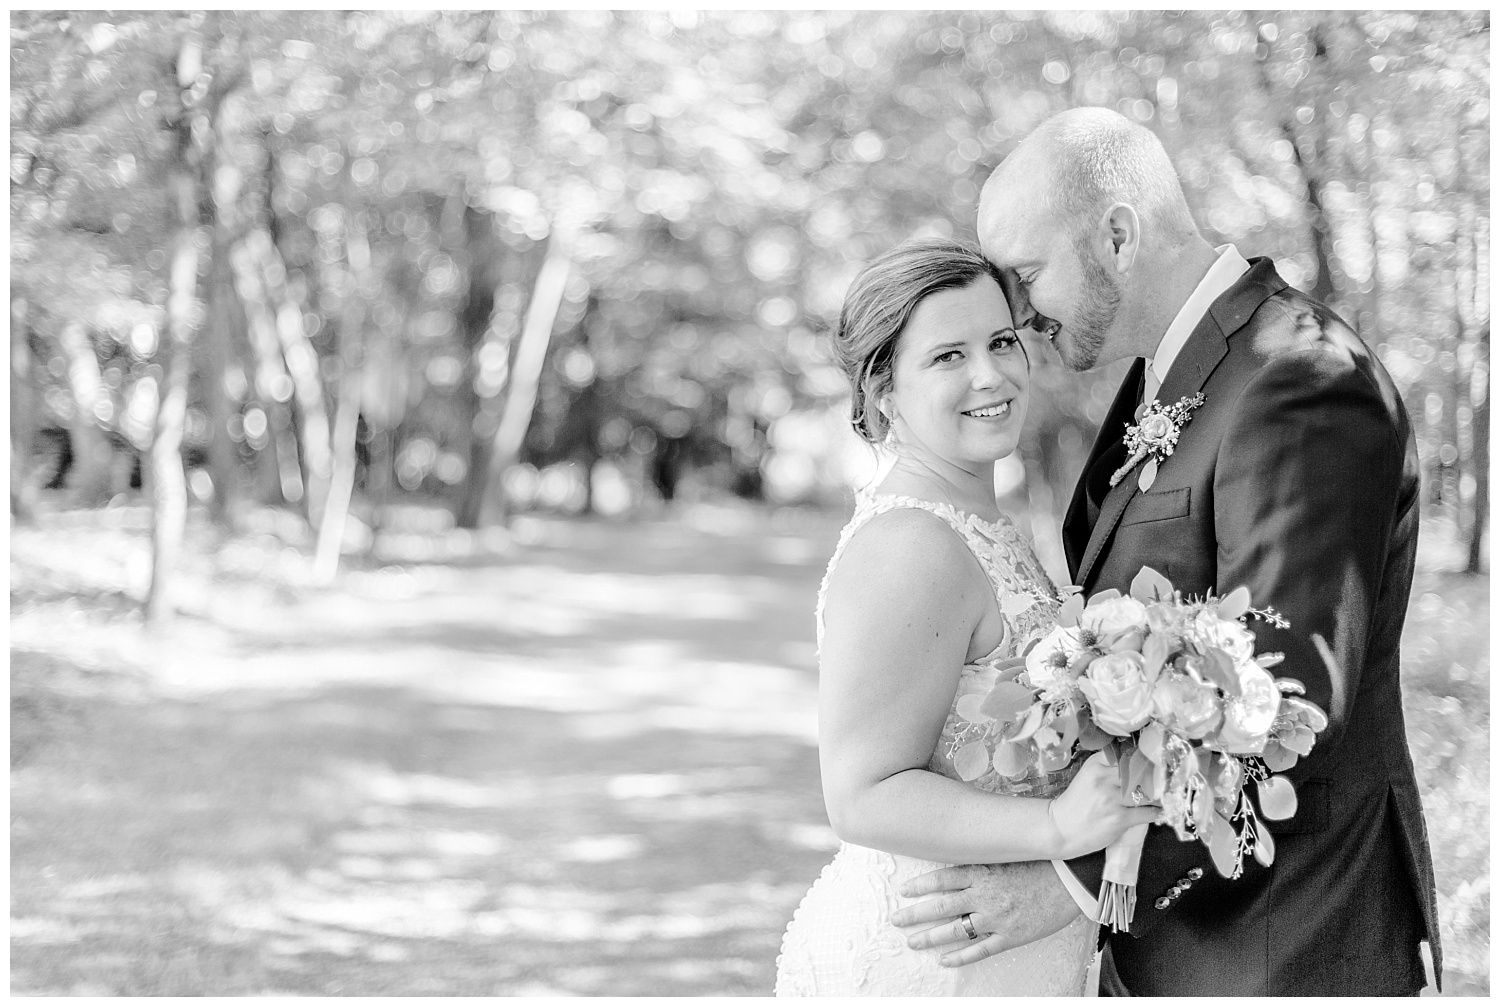 Navy and Blush pink inspired summertime whitewoods wedding in Northeastern Pennsylvania NEPA wapwallopen wedding venue by  PA based wedding and lifestyle photographer Lytle photography_0036.jpg